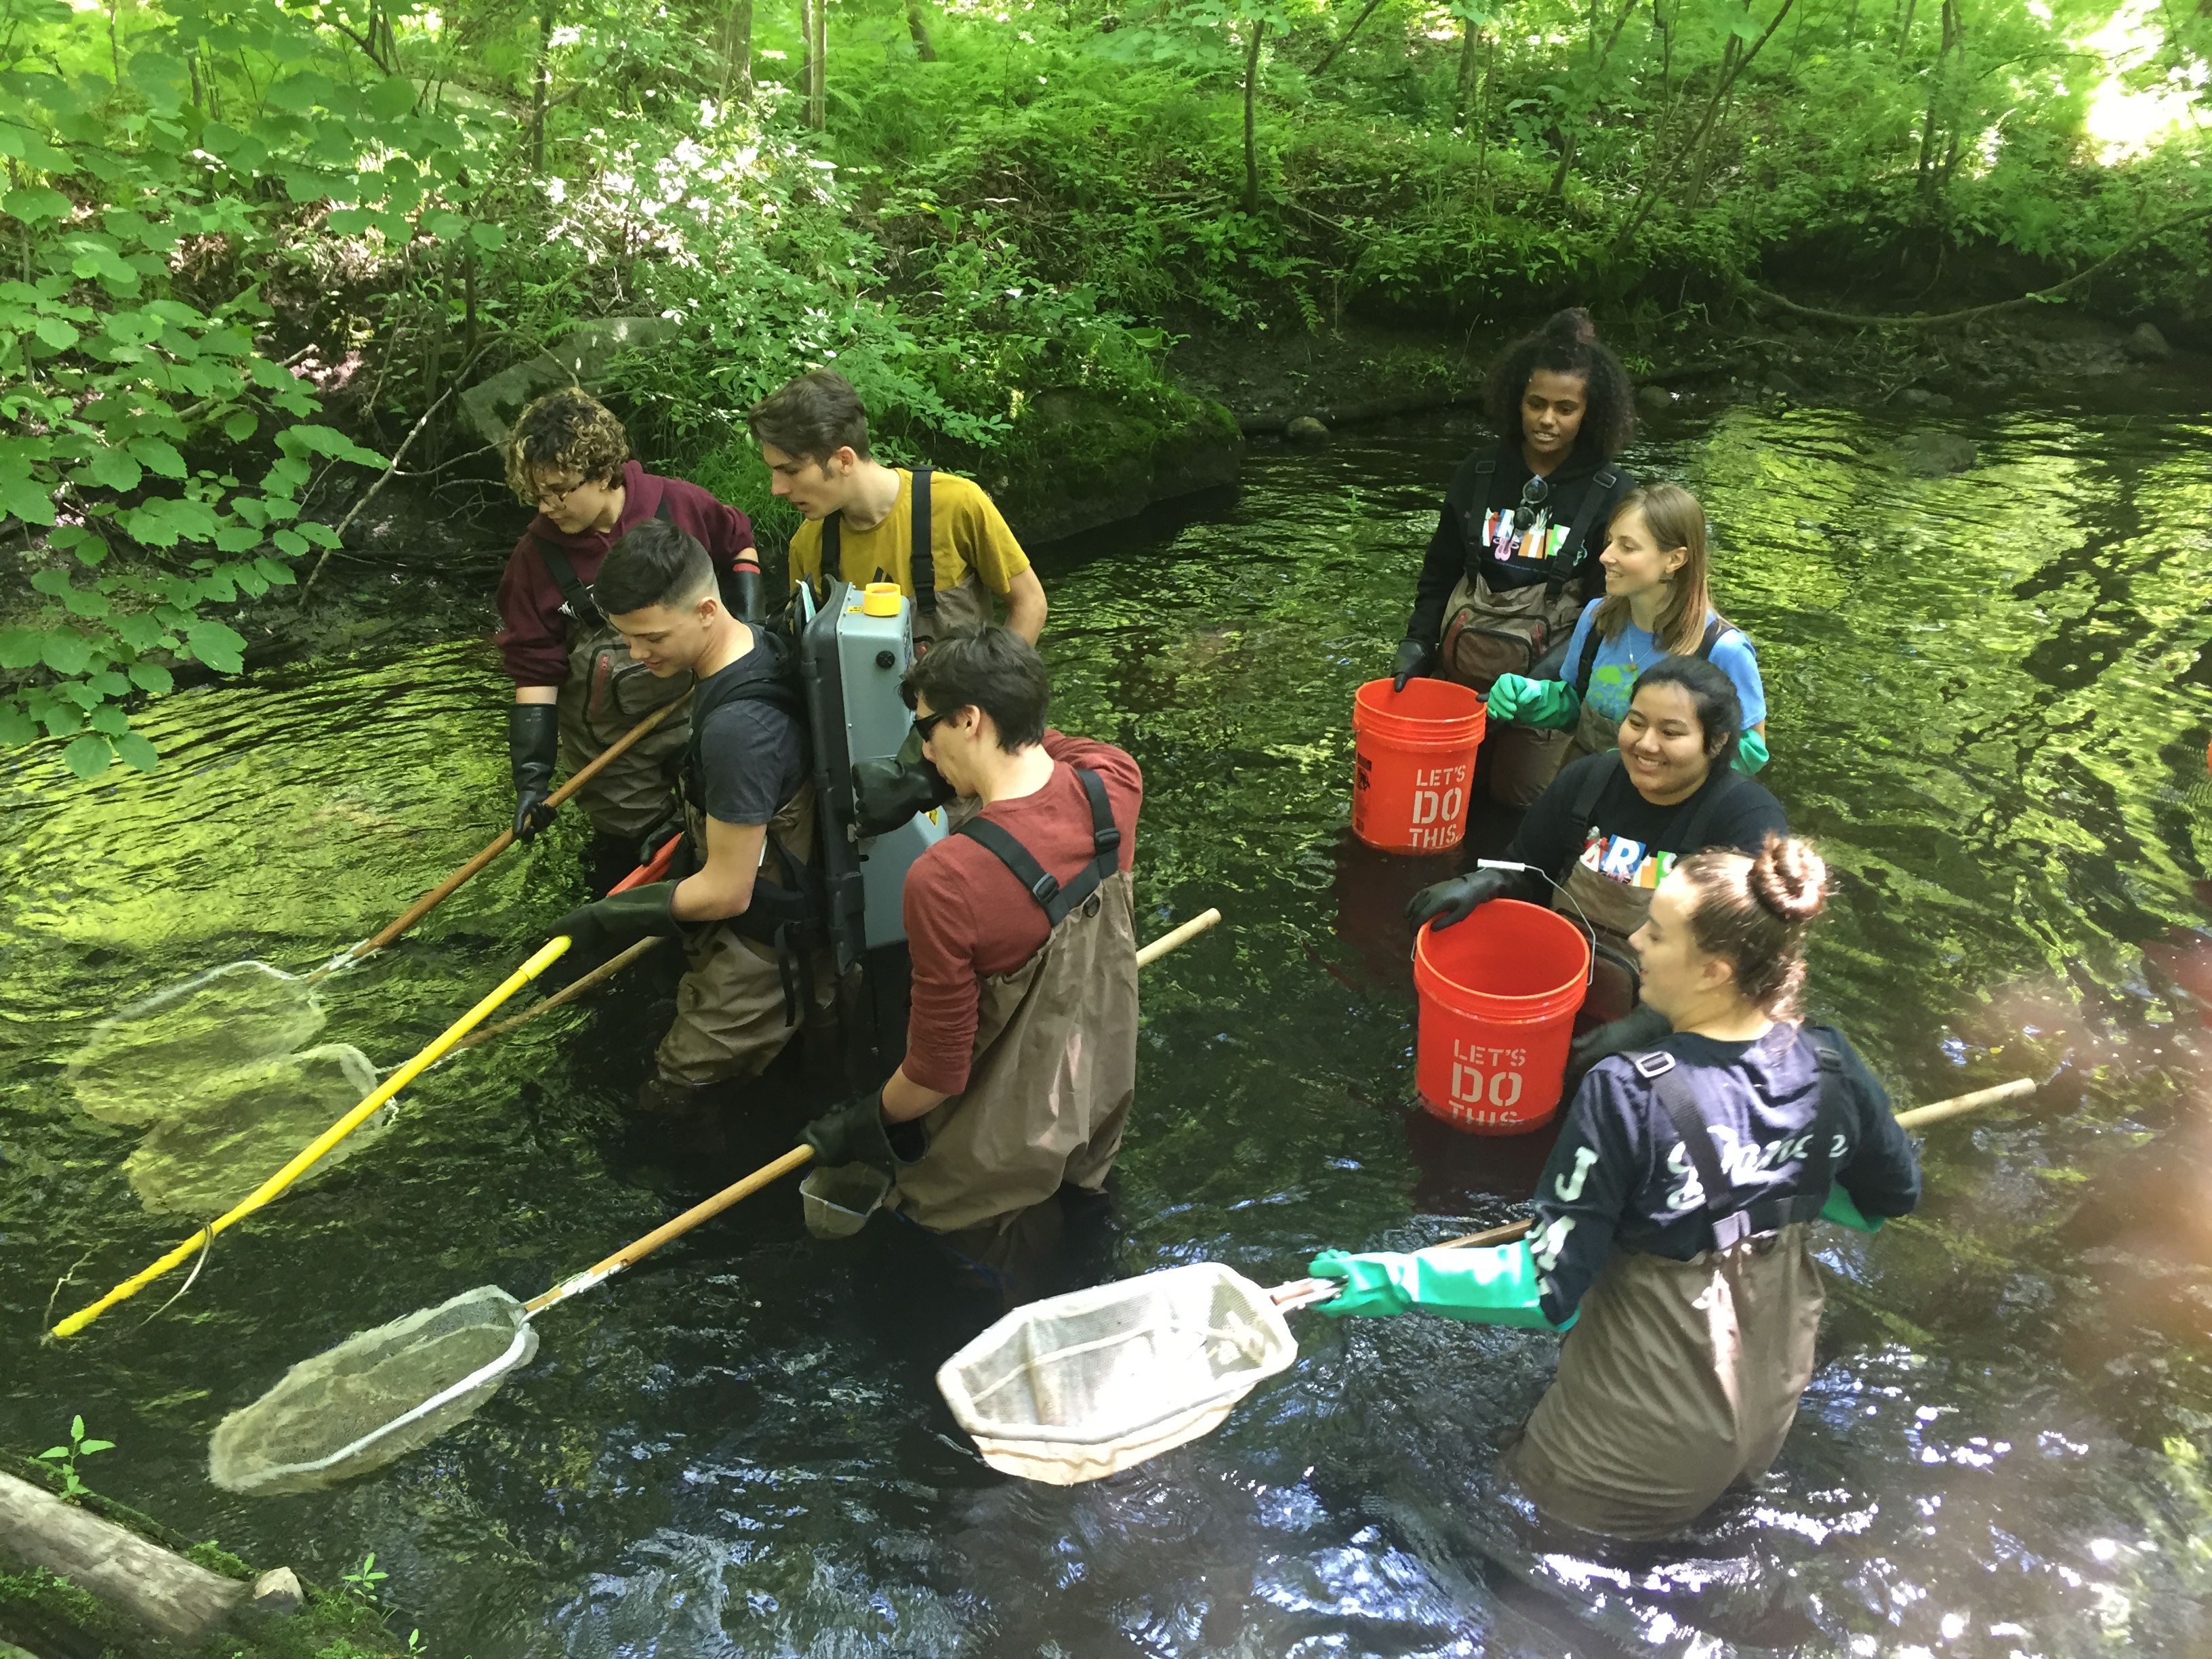 Eight youth in waders walk waist-deep in a river, with long-handled nets and buckets.